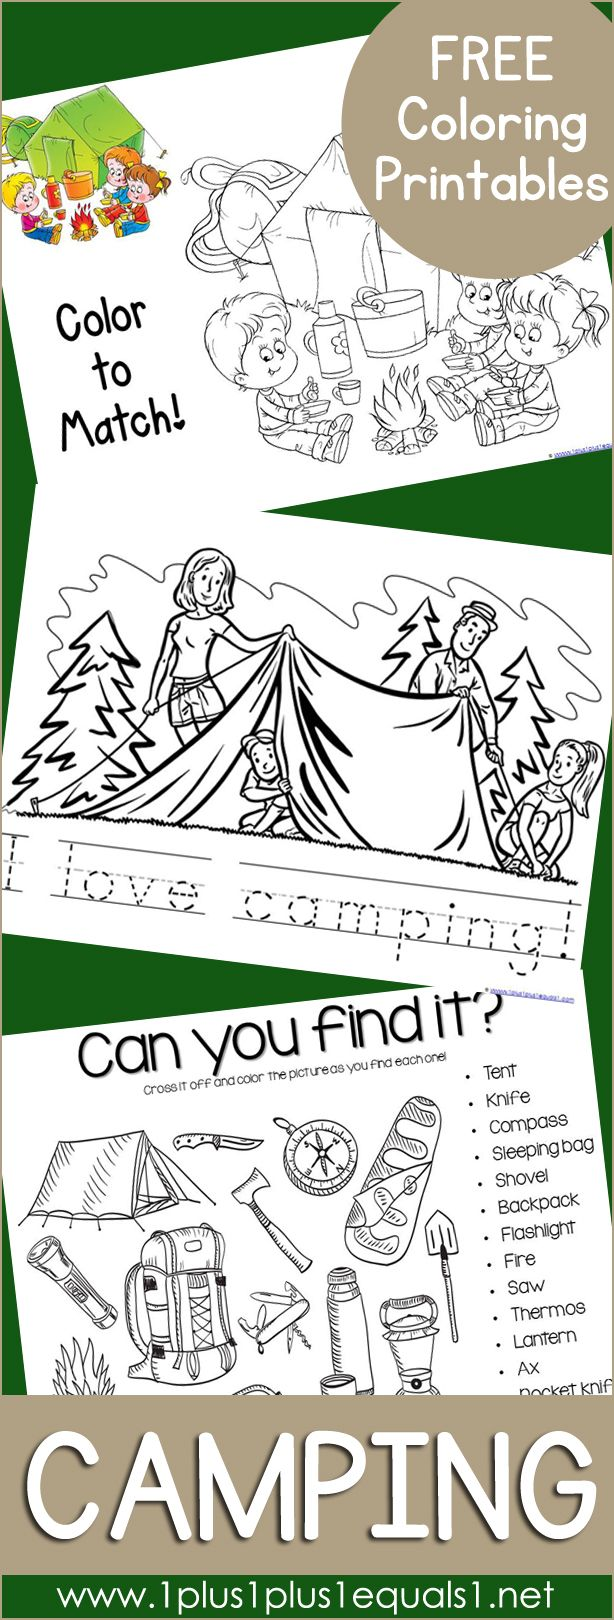 Free Camping Coloring Printables Activities And Pages For Kids